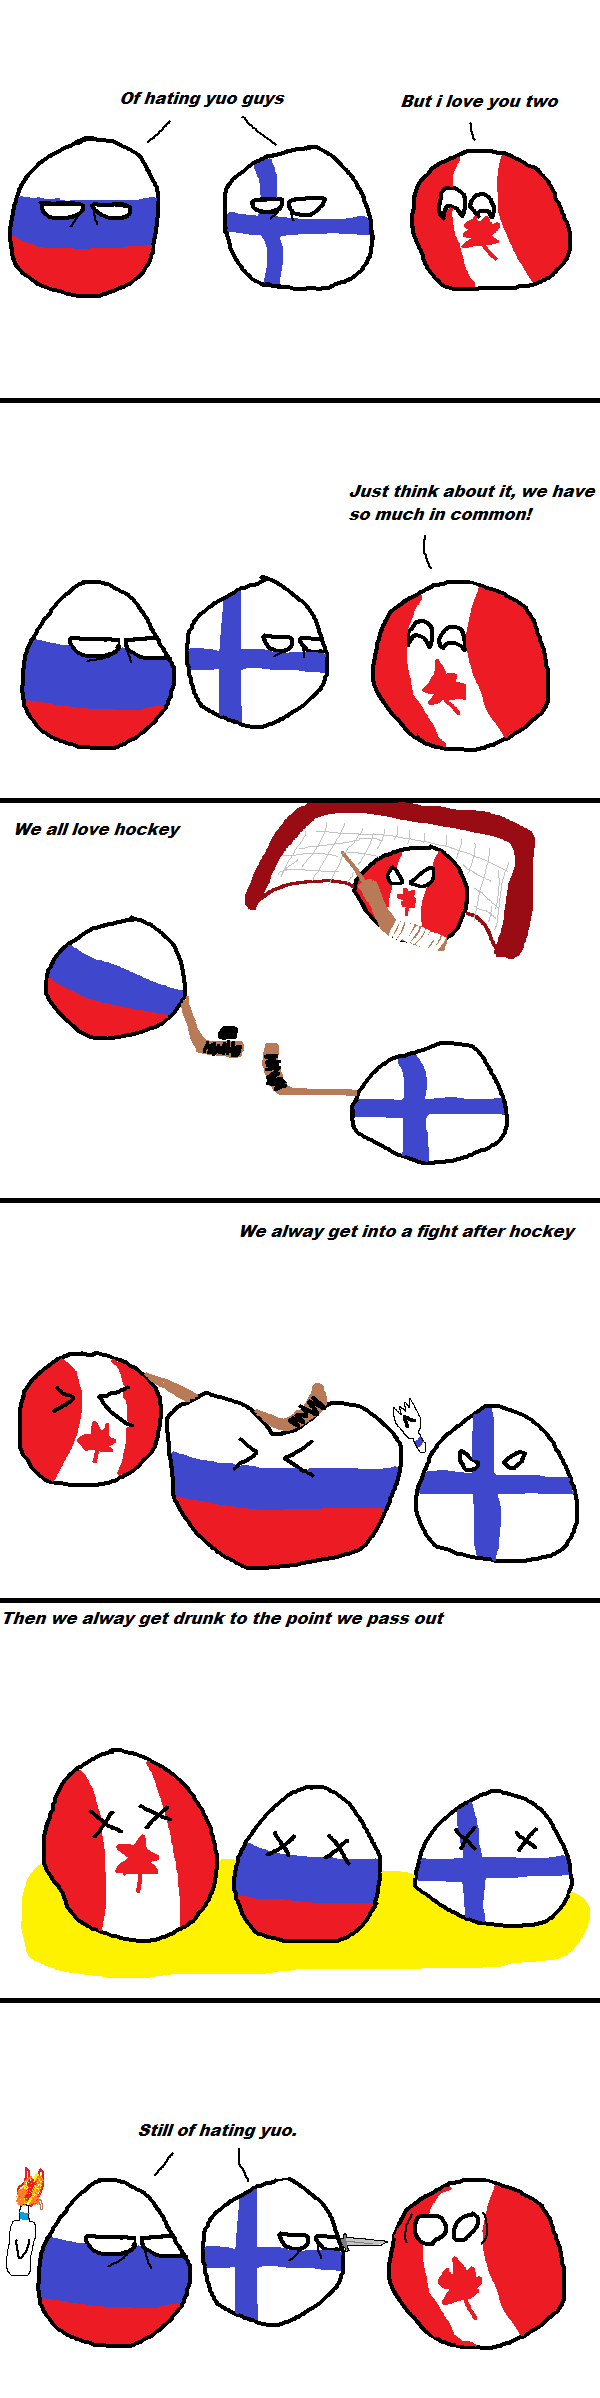 Canada can't find true friend